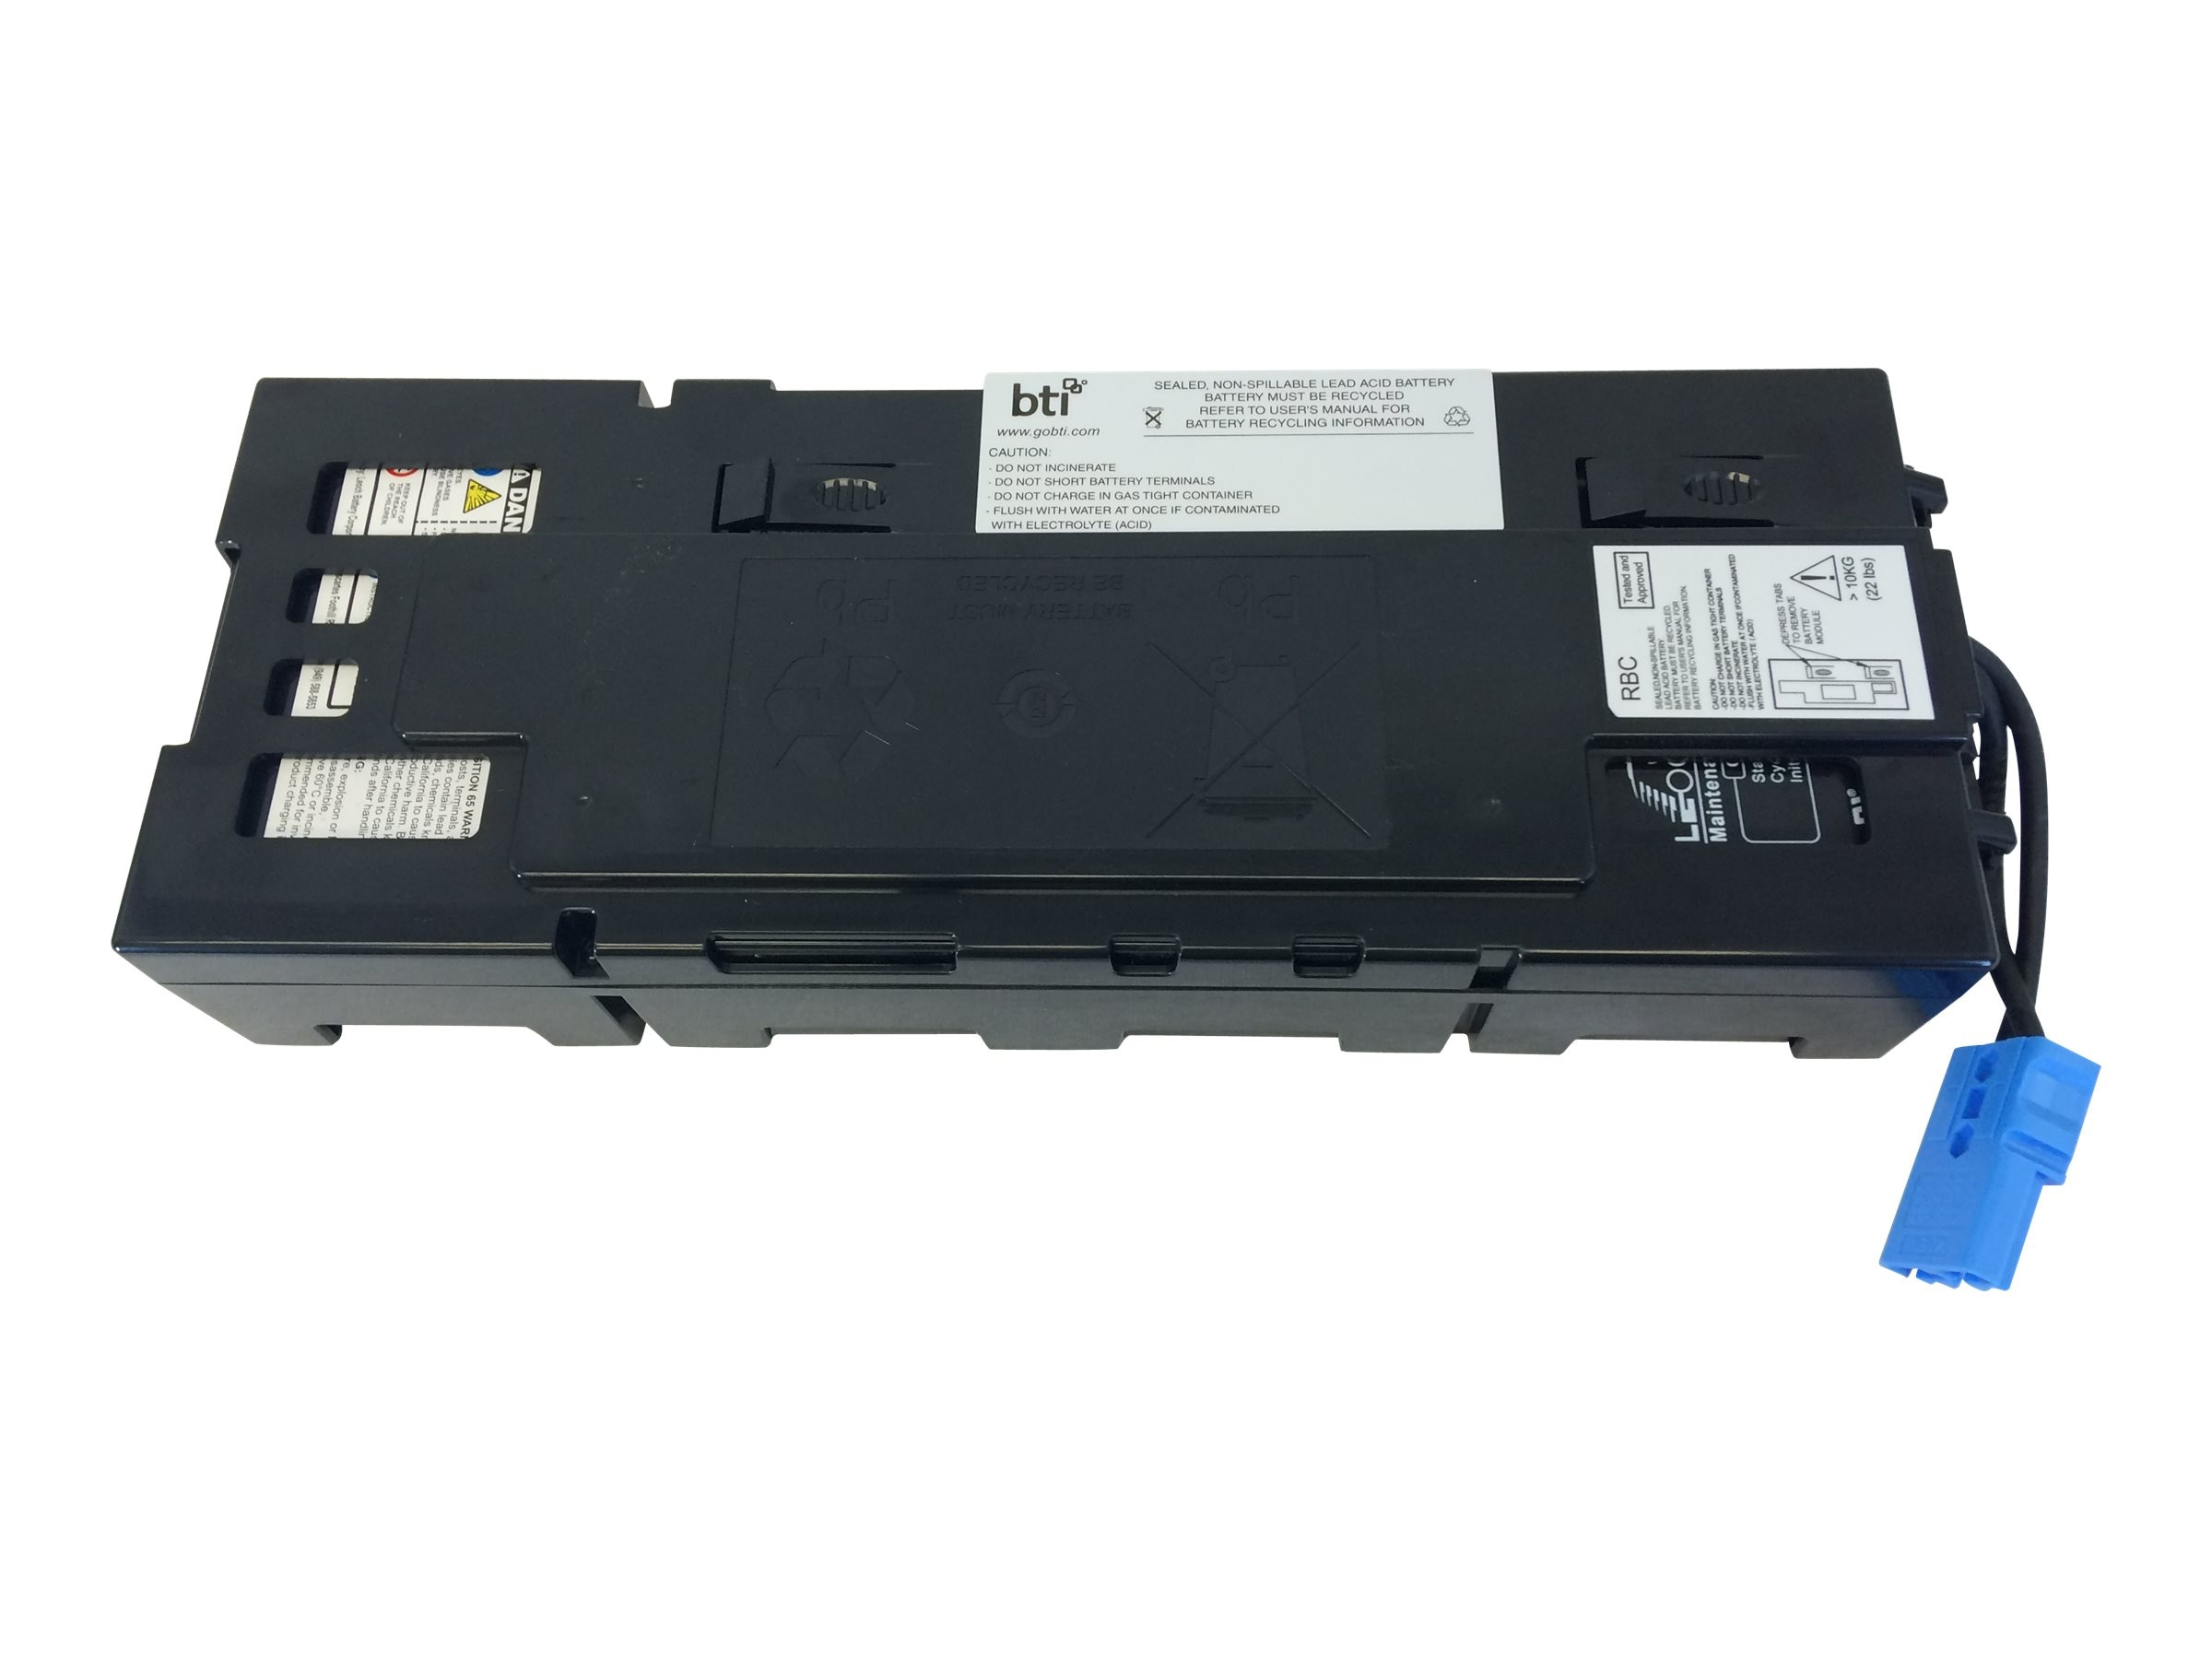 BTI RBC116 APC UPS Replacement Battery BATTSMX750 SMX1000 APCRBC116